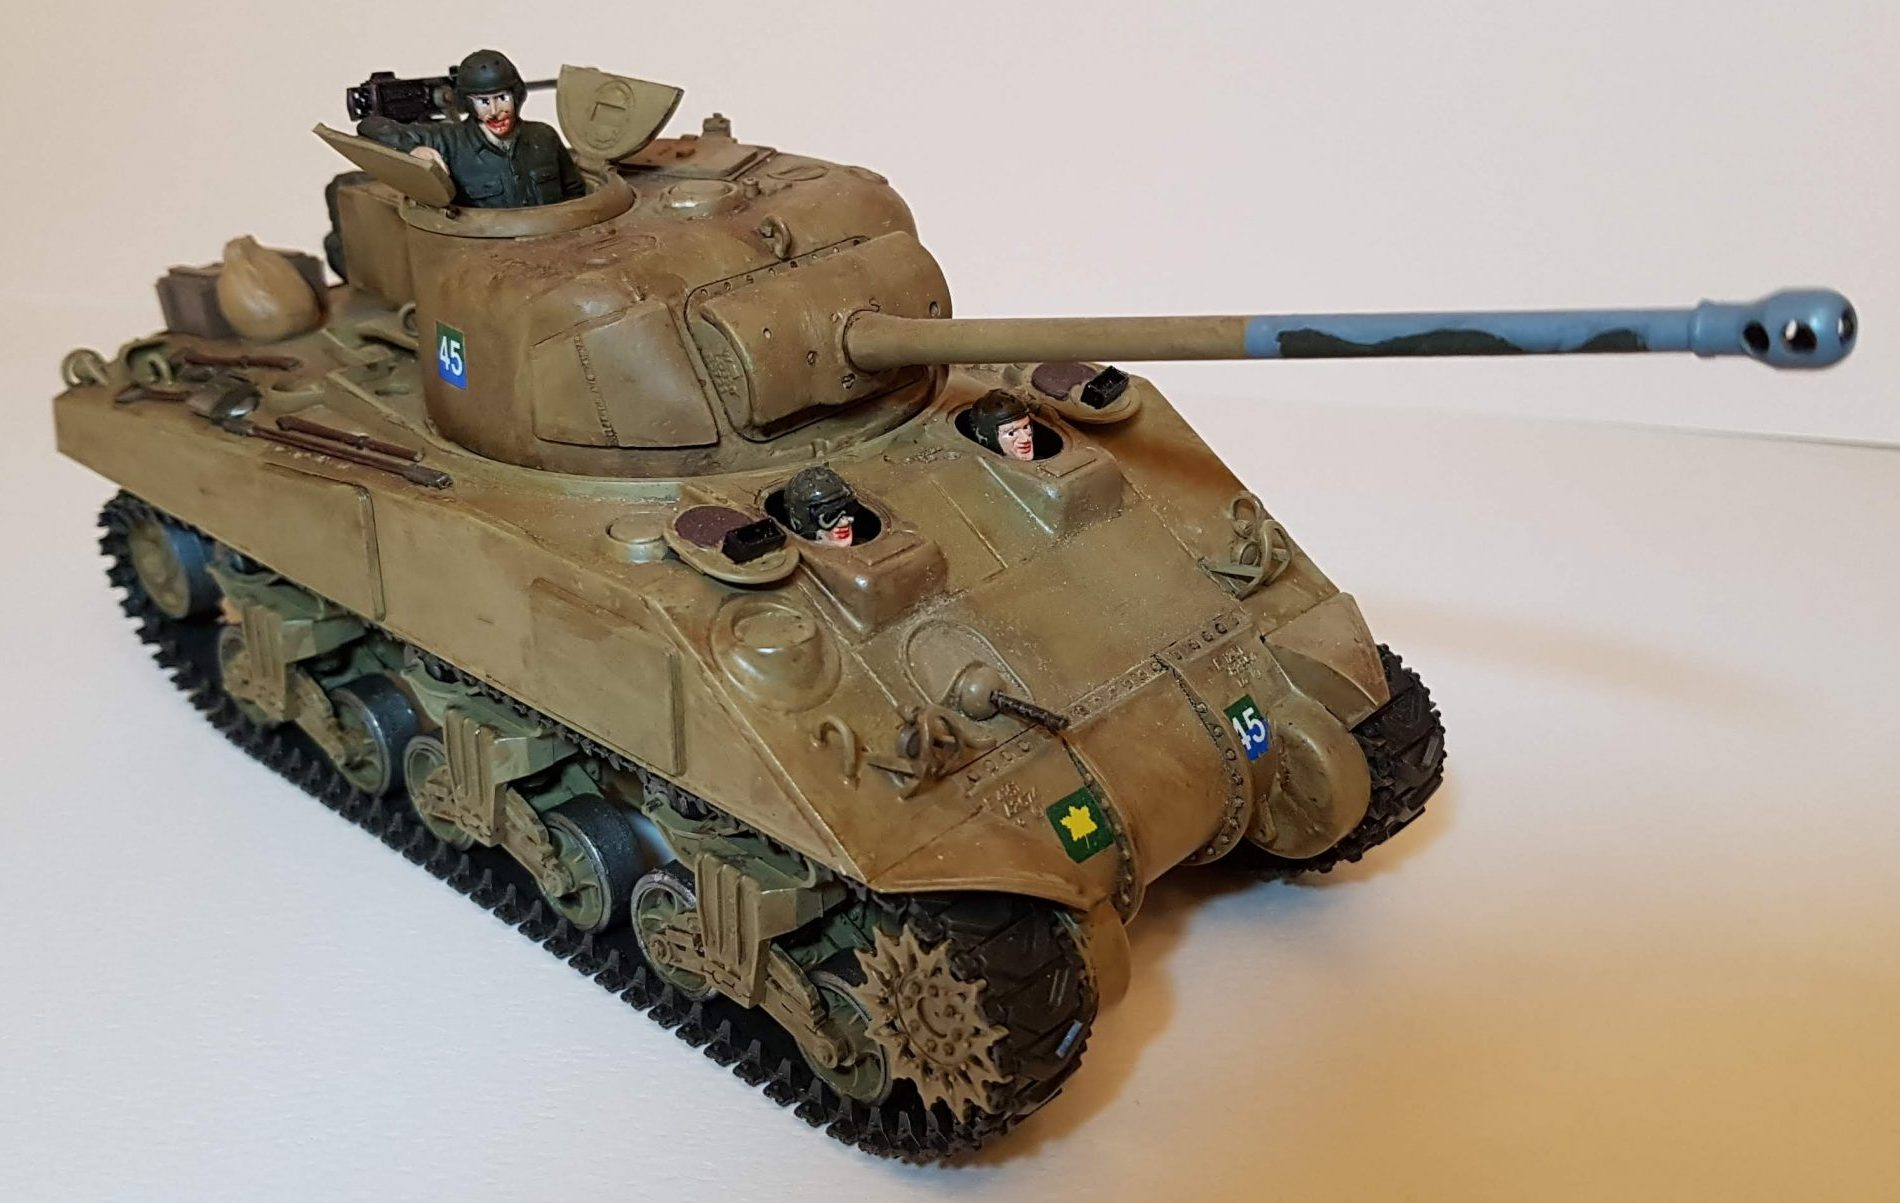 Canadian M4 Sherman (WW2) - View 2 - 1/35 Scale - Built By Wright Built - Tamiya, Formations